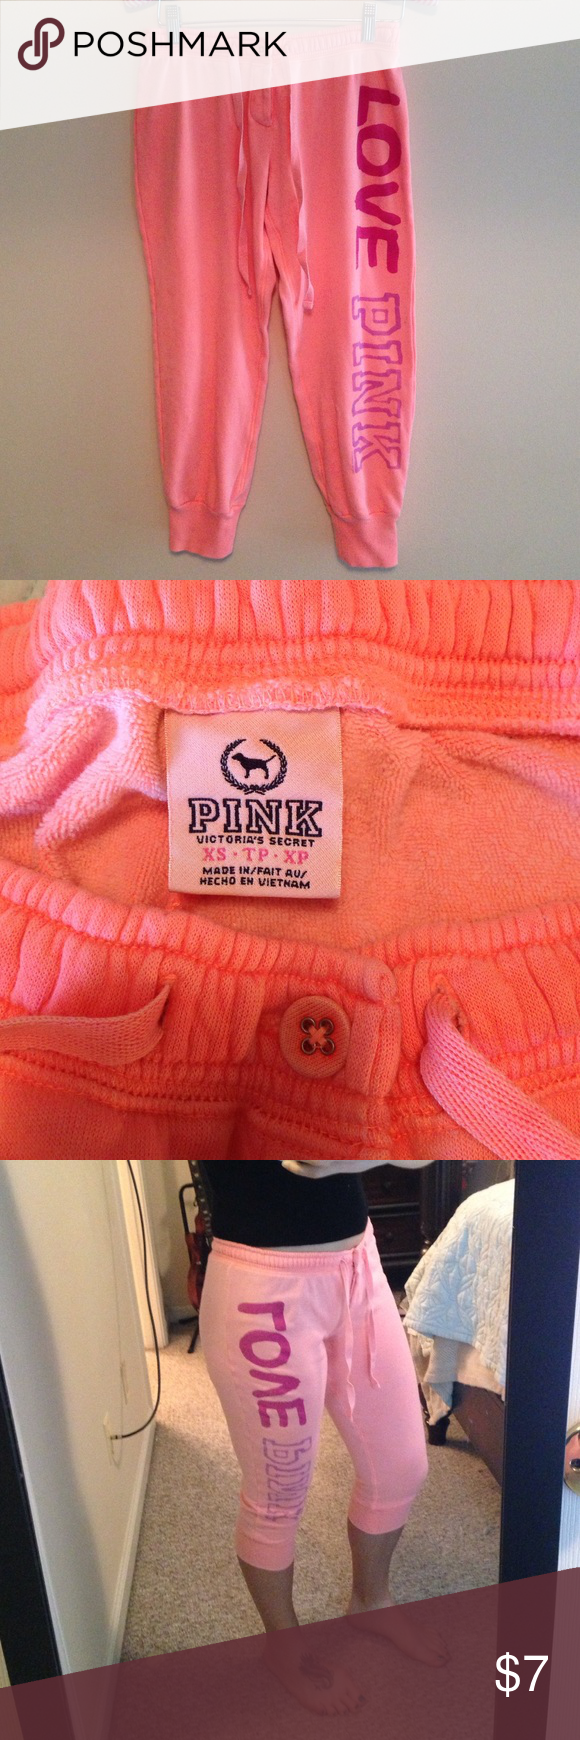 Pink Cropped Sweatpants Bright Orangish Color Meant To Be Semi Faded With